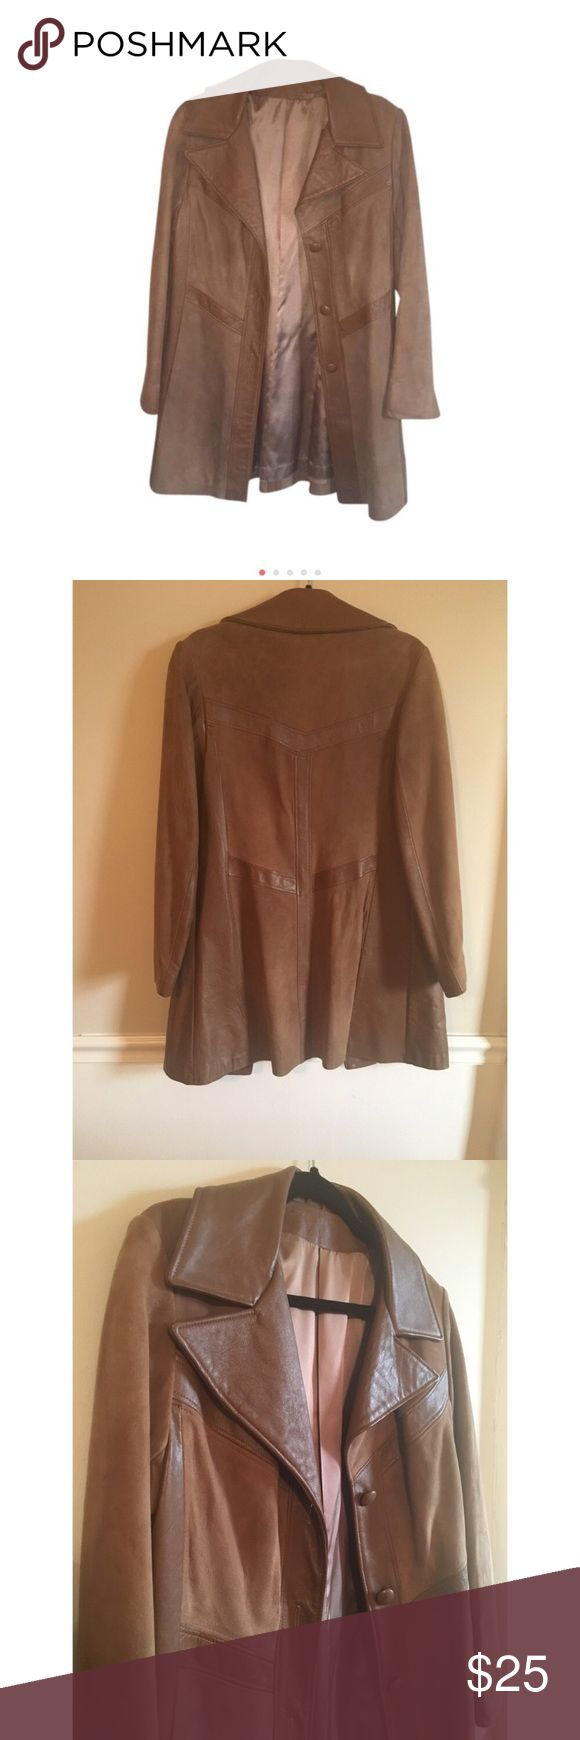 Vintage 70s style Brown Leather and Suede Coat Excellent Condition! 70s inspired leather and luxurious suede trench coat that commands attention.  This stylish and flattering trench coat is a stunner.  No label but Fits like a Size 10 new england sportswear company Jackets & Coats